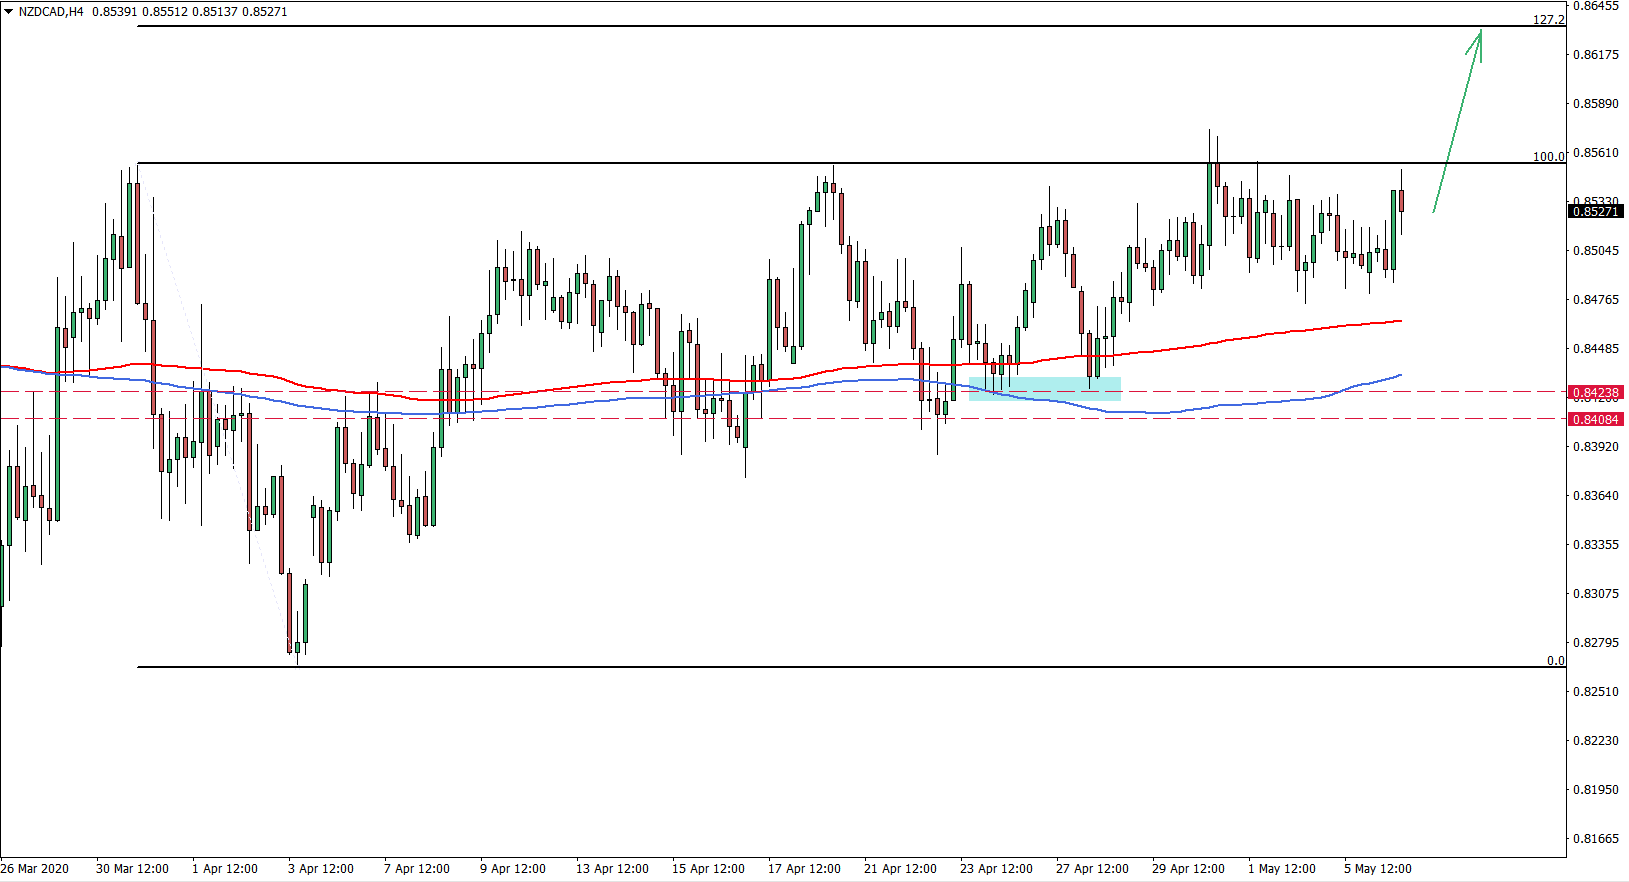 NZDCAD 4H Chart May 6th 2020